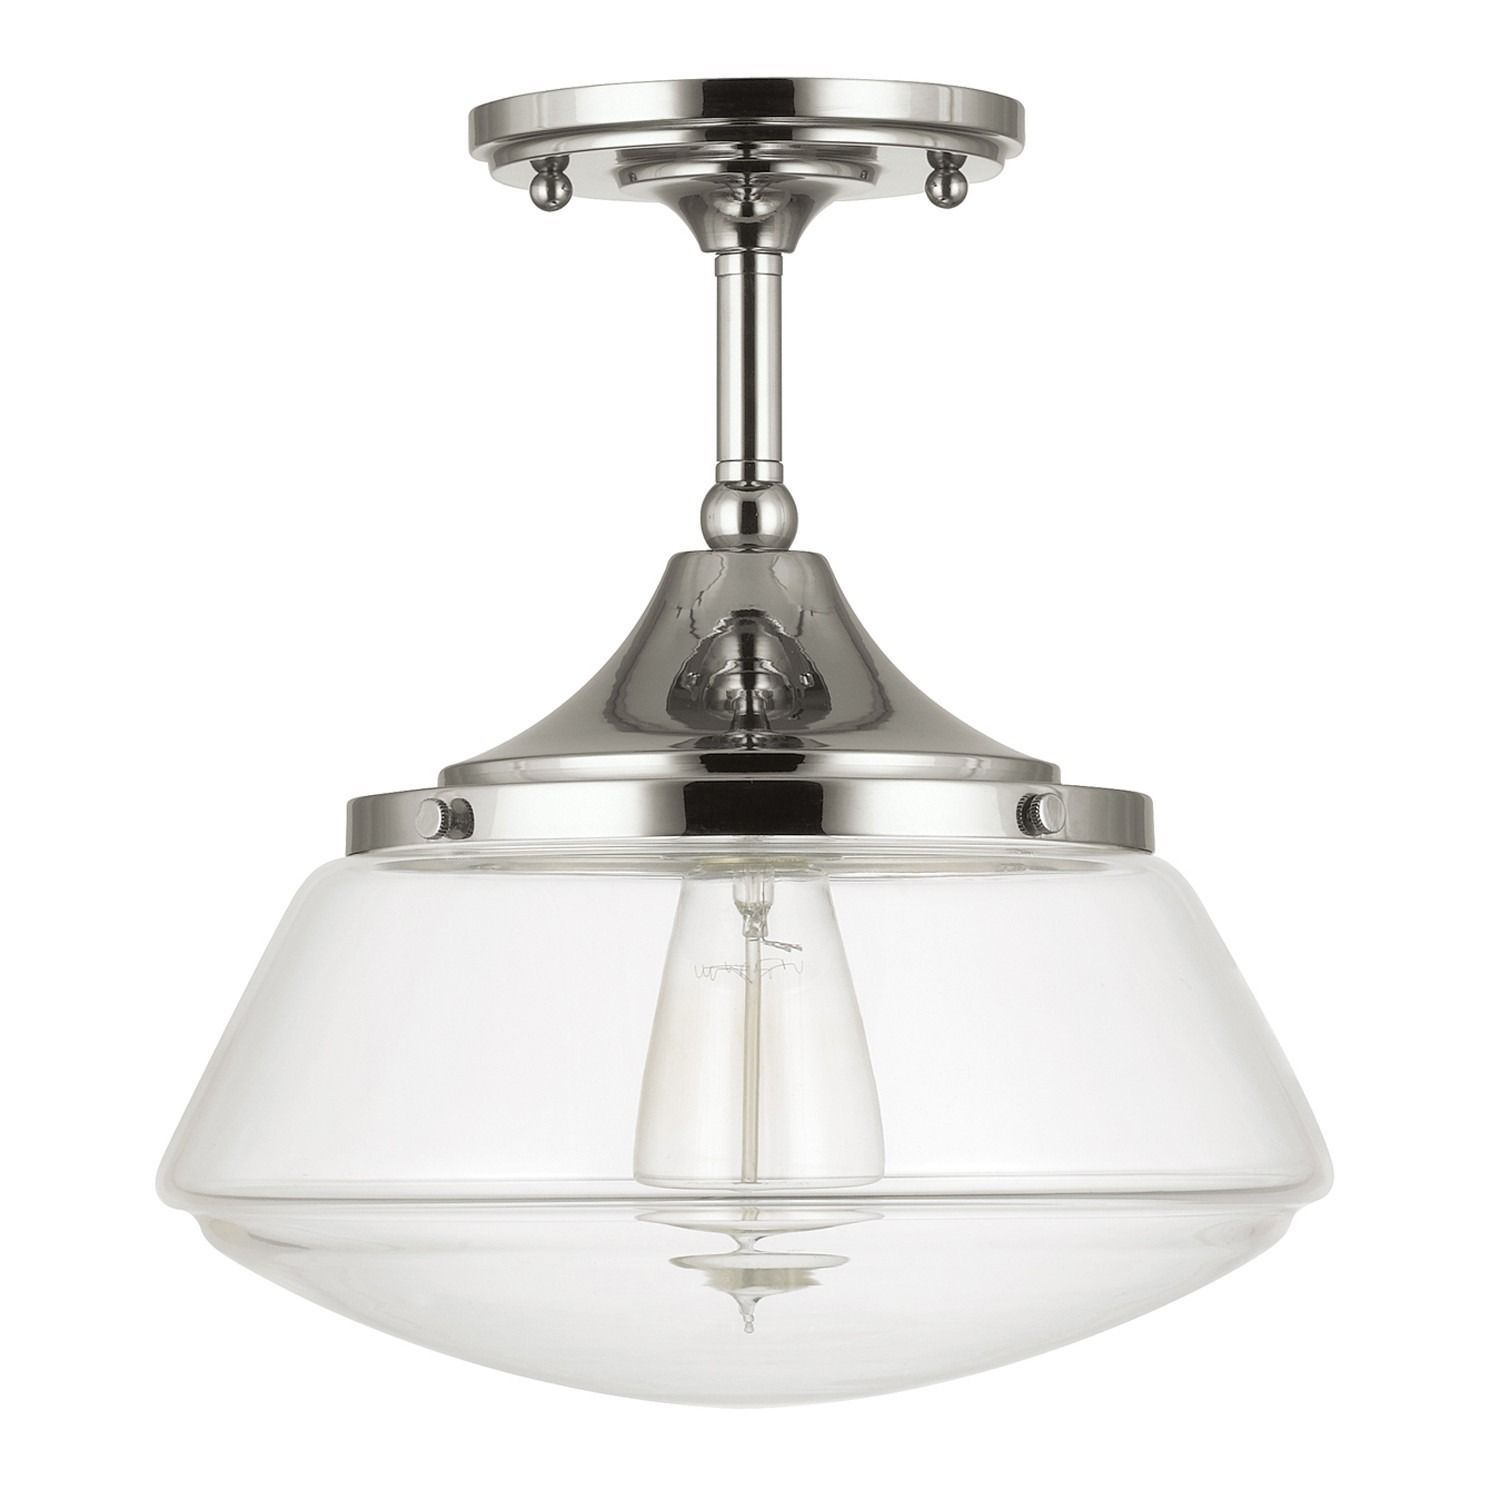 Update Your Decor With This School House Light Fixture Which Features A Retro